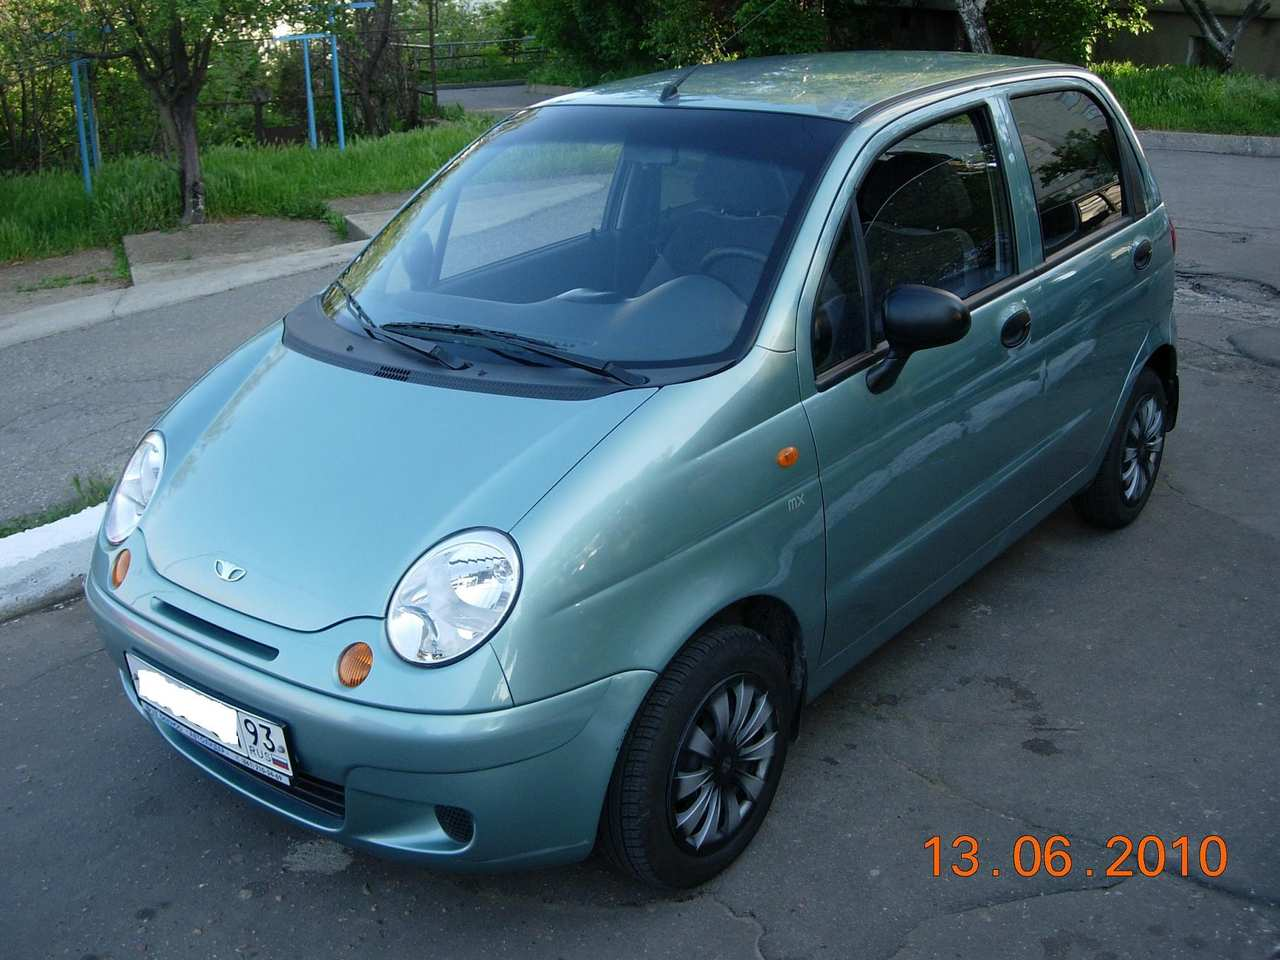 Used 2009 Daewoo Matiz Photos  580cc   Gasoline  Ff